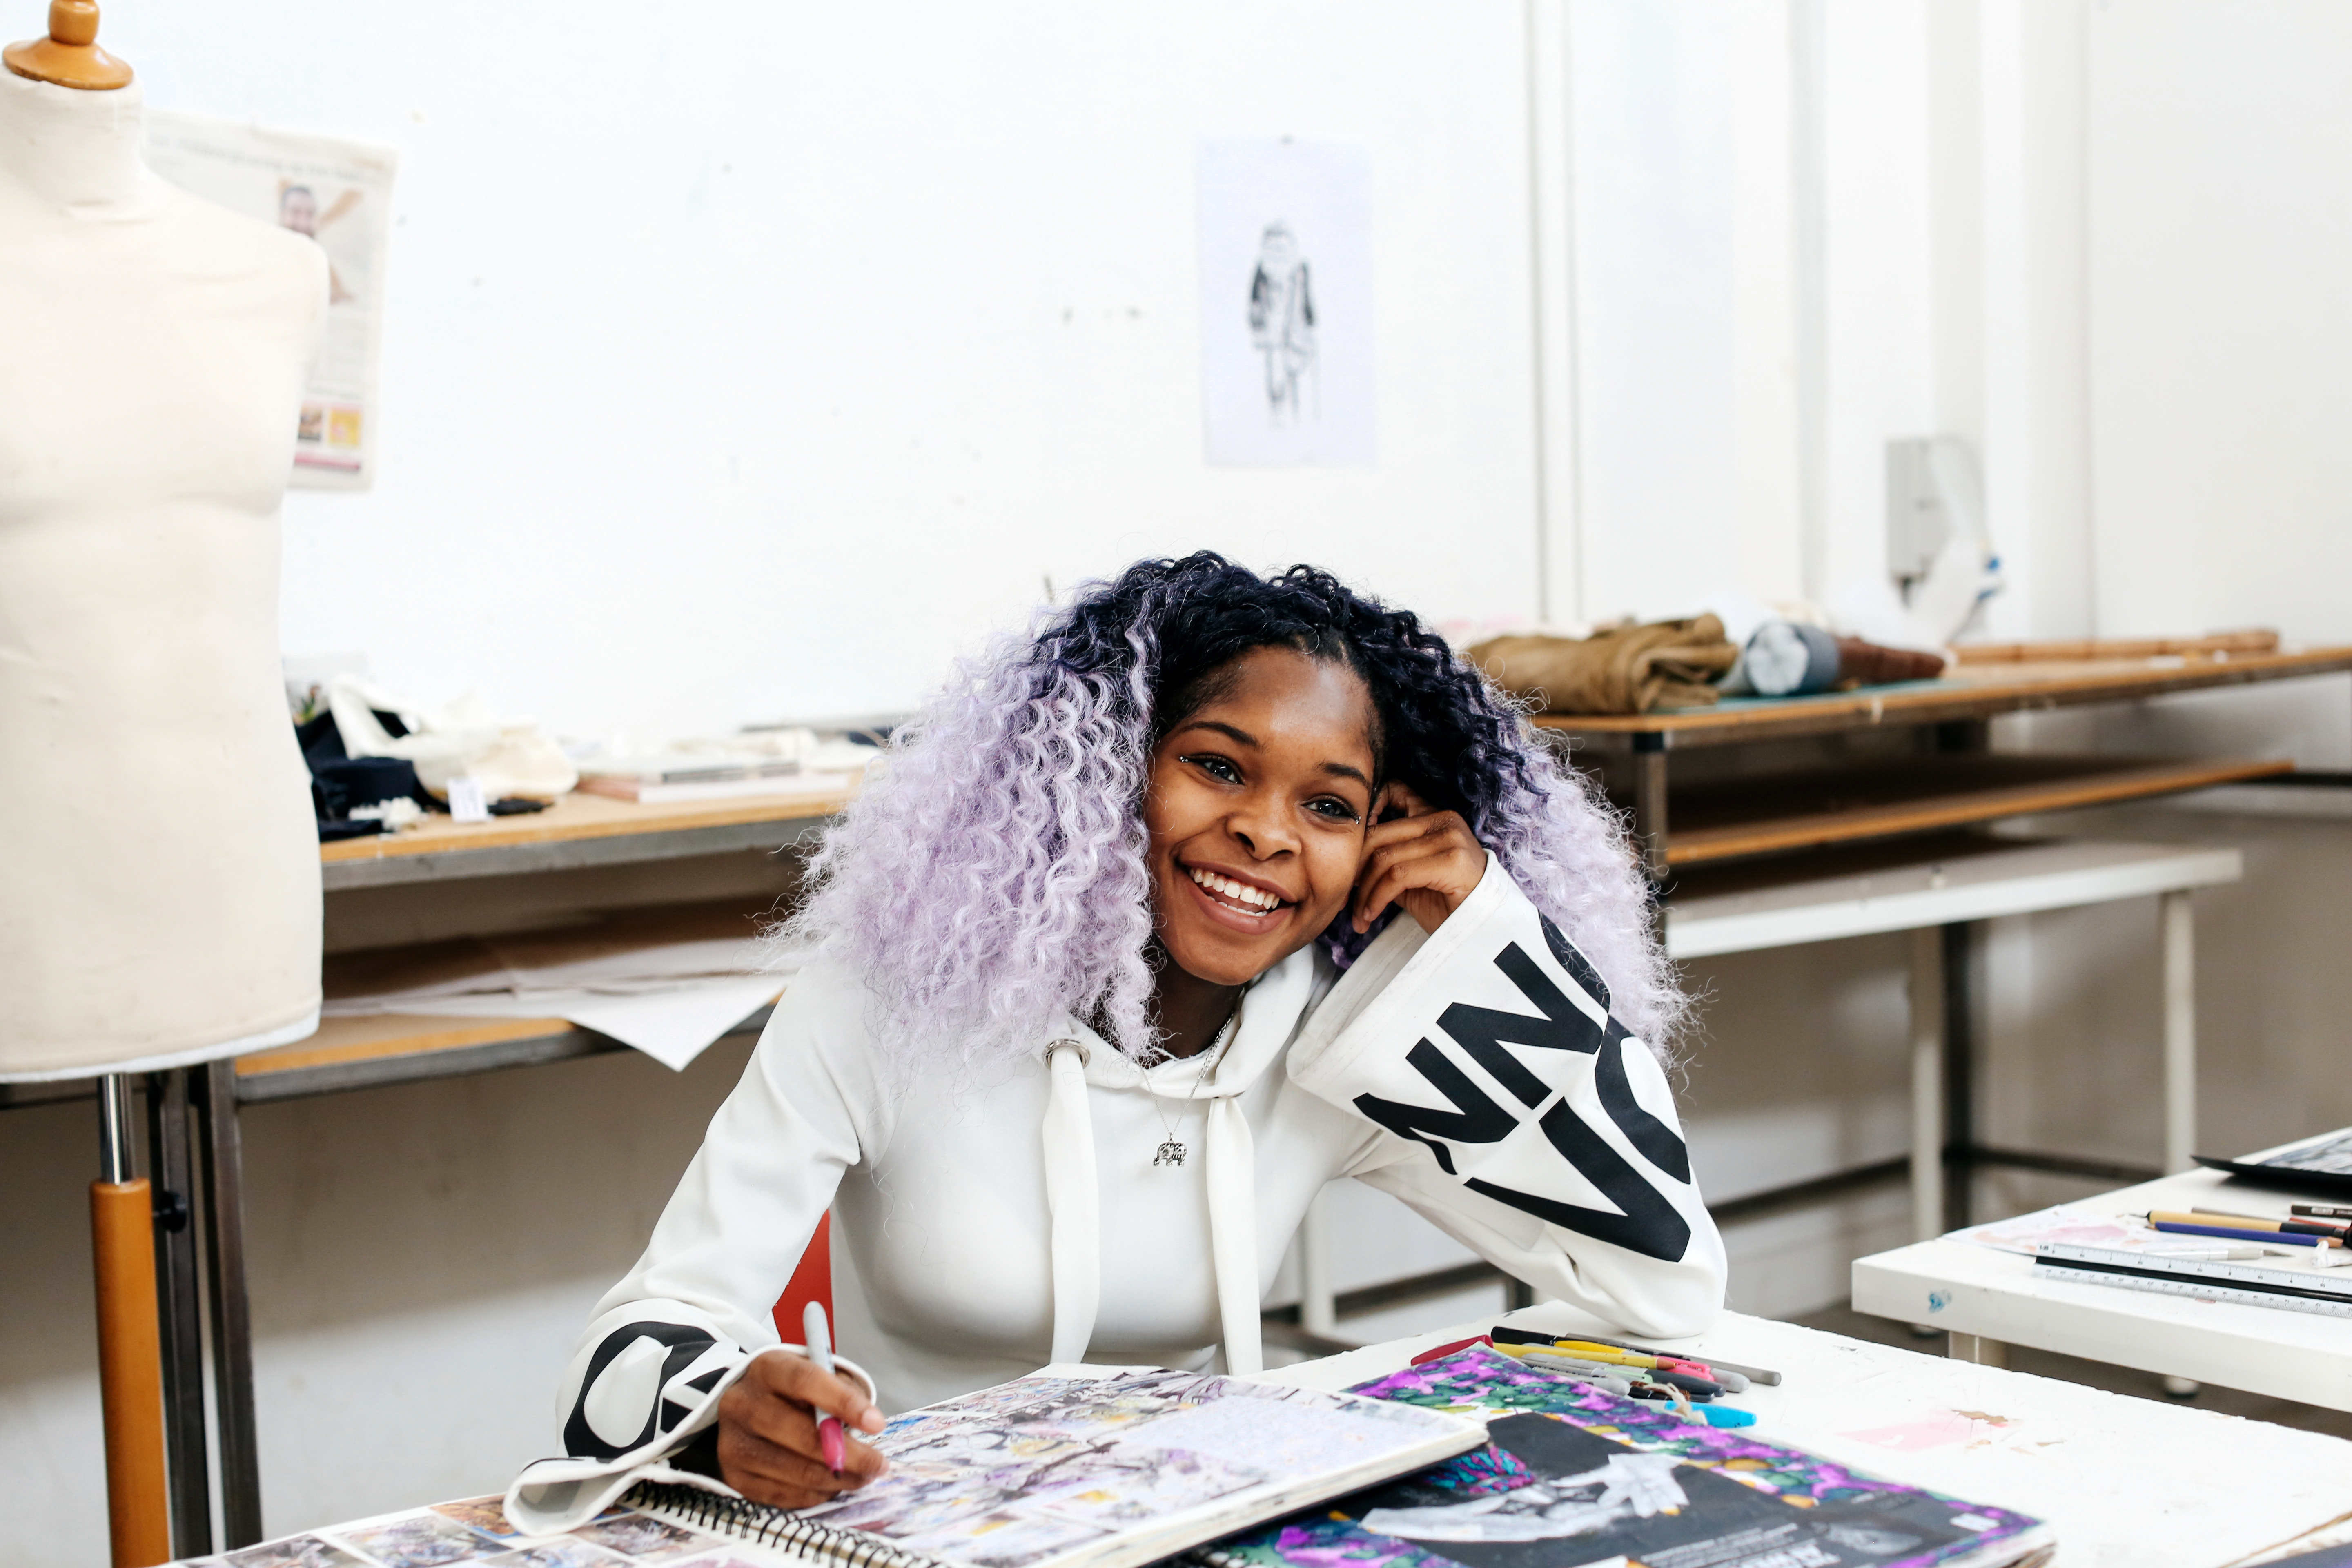 Woman with purple hair, smiling. Her sketchbook is open on the table